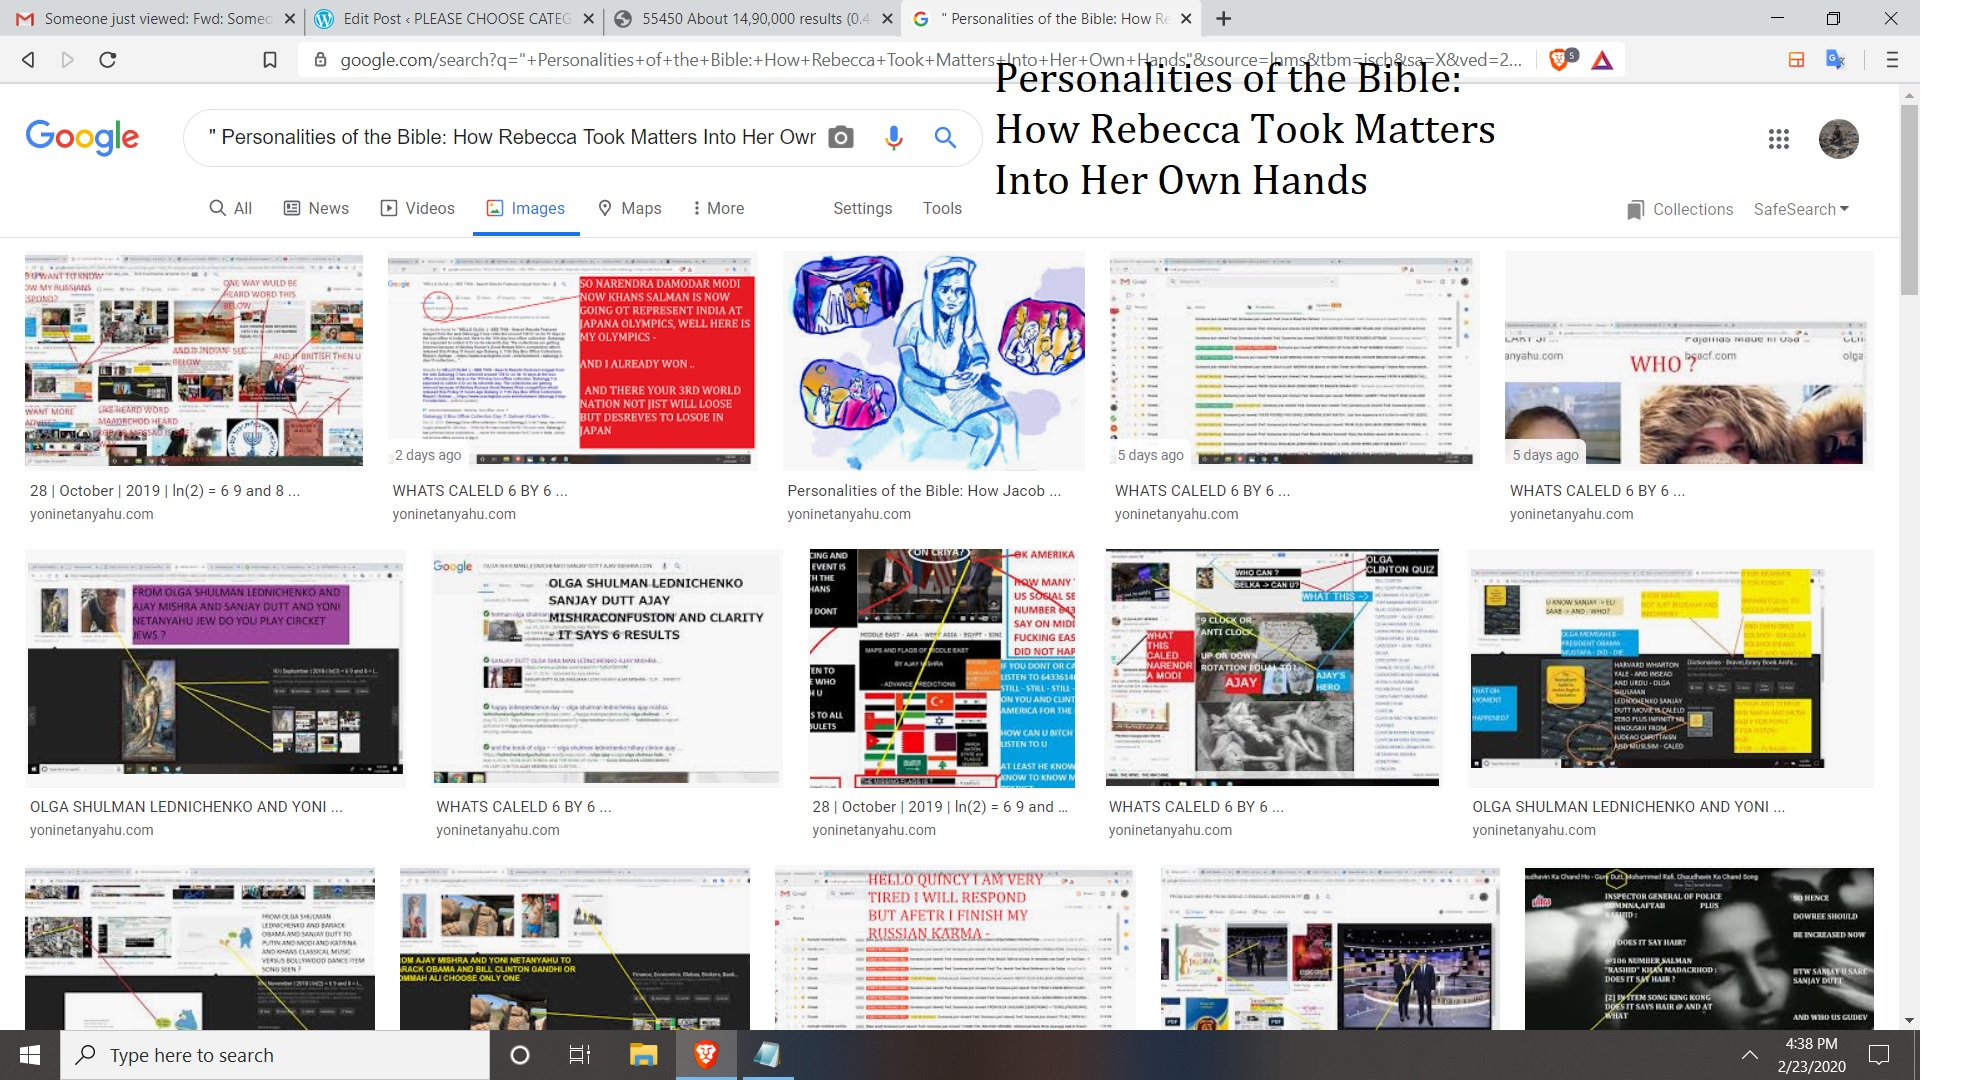 Personalities of the Bible How Rebecca Took Matters Into Her Own Hands